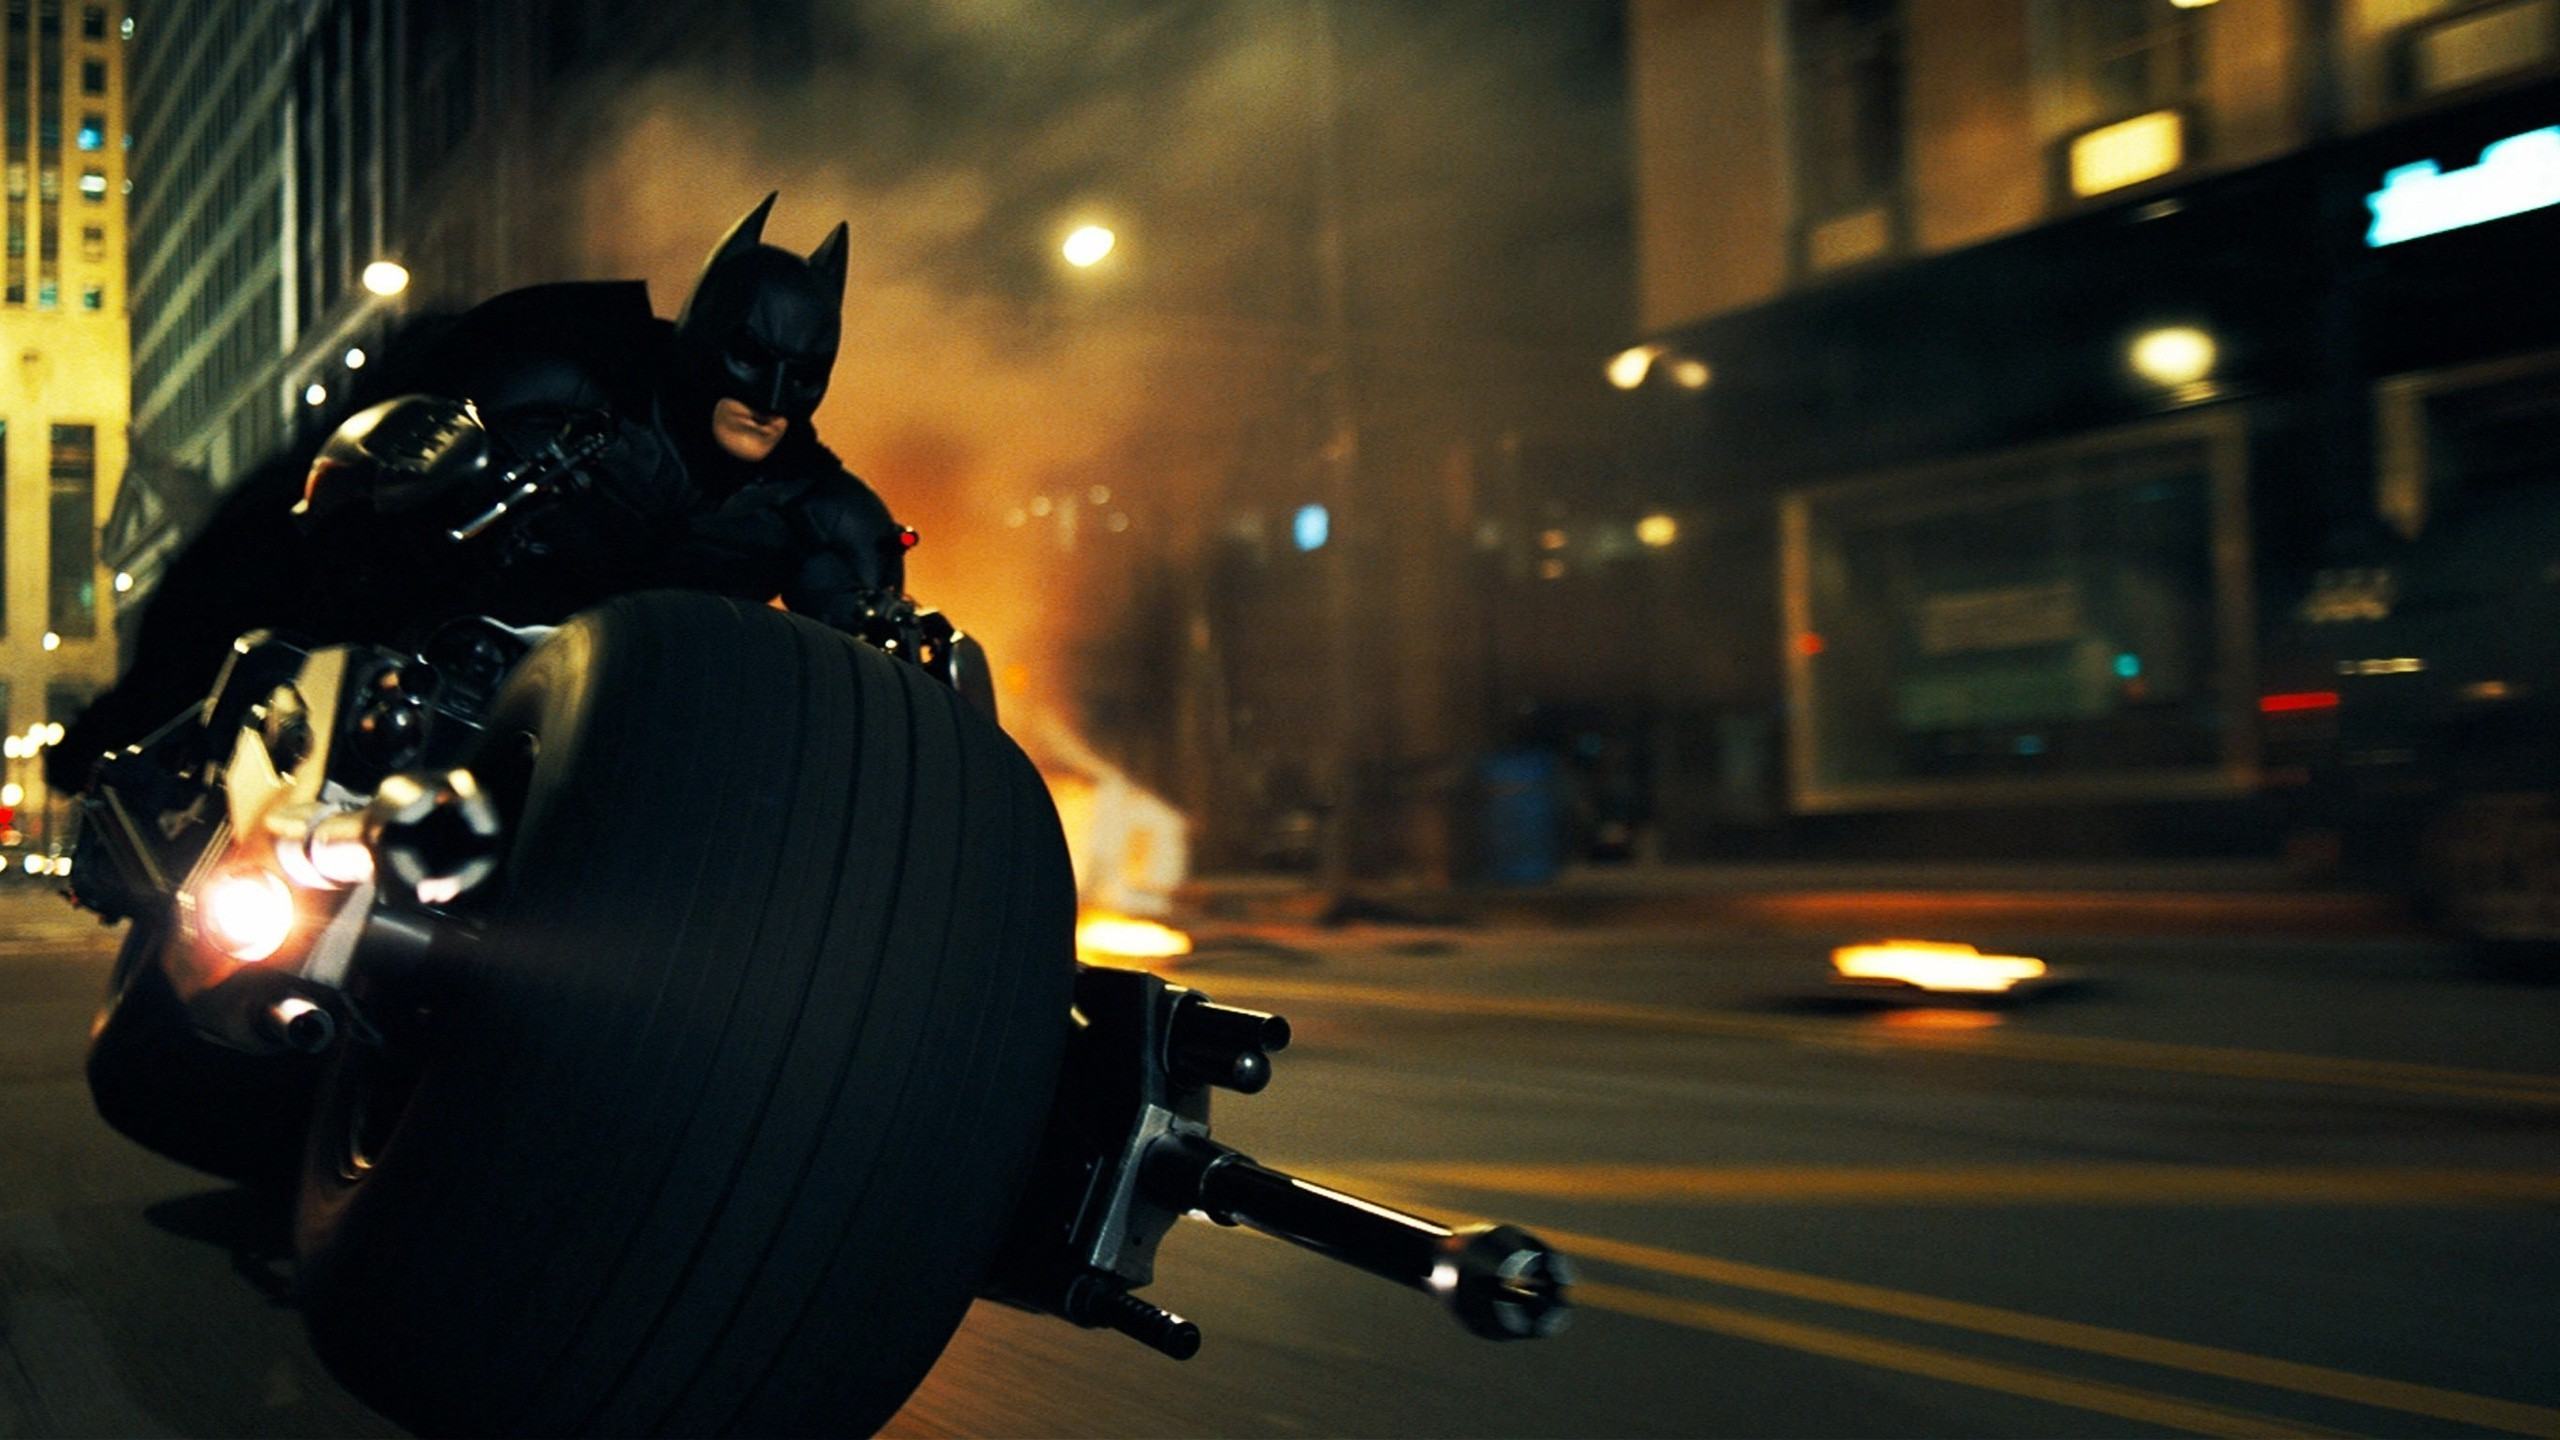 Dark Knight Hd Wallpaper 75 Images